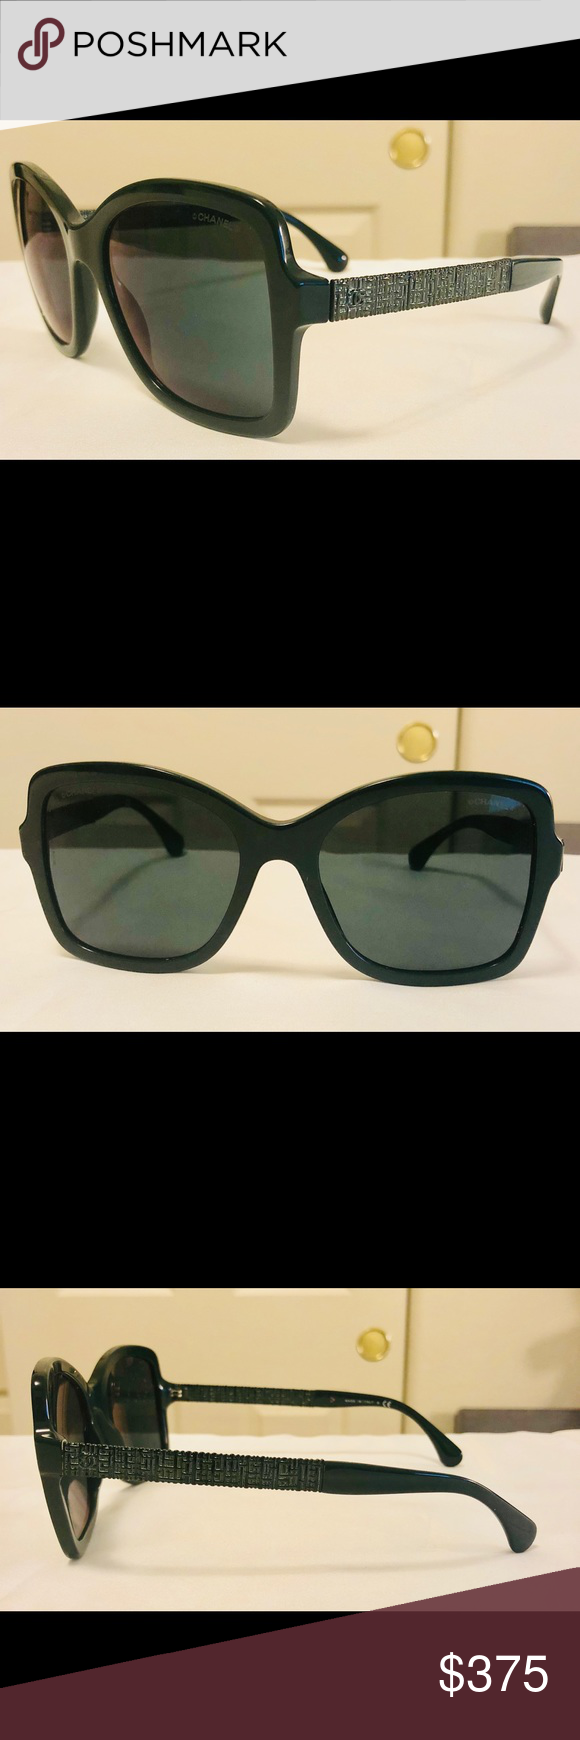 580b8f6bb1 New Square Forest Green Chanel Sunglasses 5383 Coming CHANEL Accessories  Sunglasses